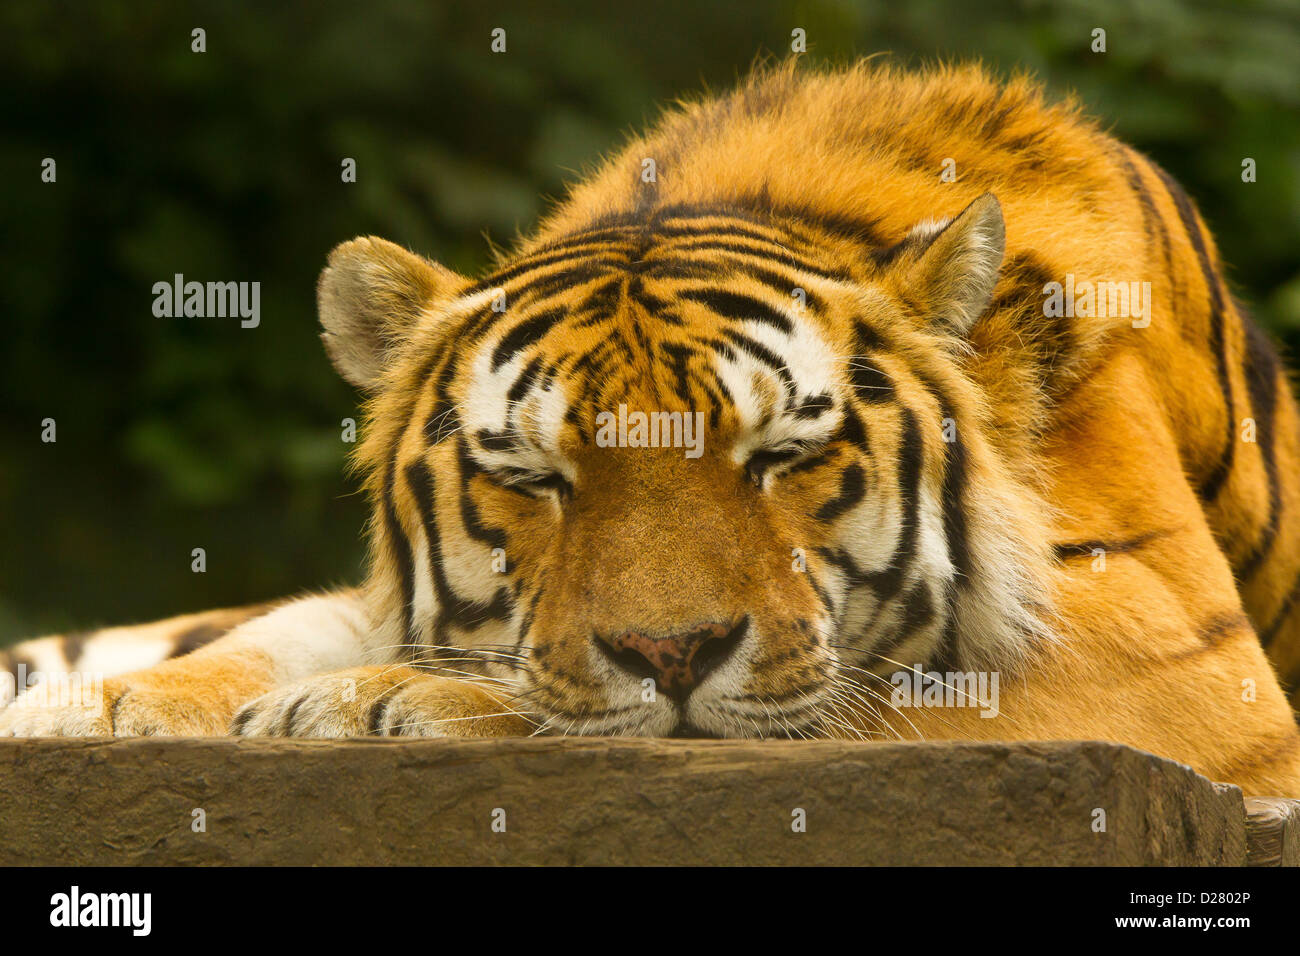 big cat sleeping photos big cat sleeping images alamy. Black Bedroom Furniture Sets. Home Design Ideas